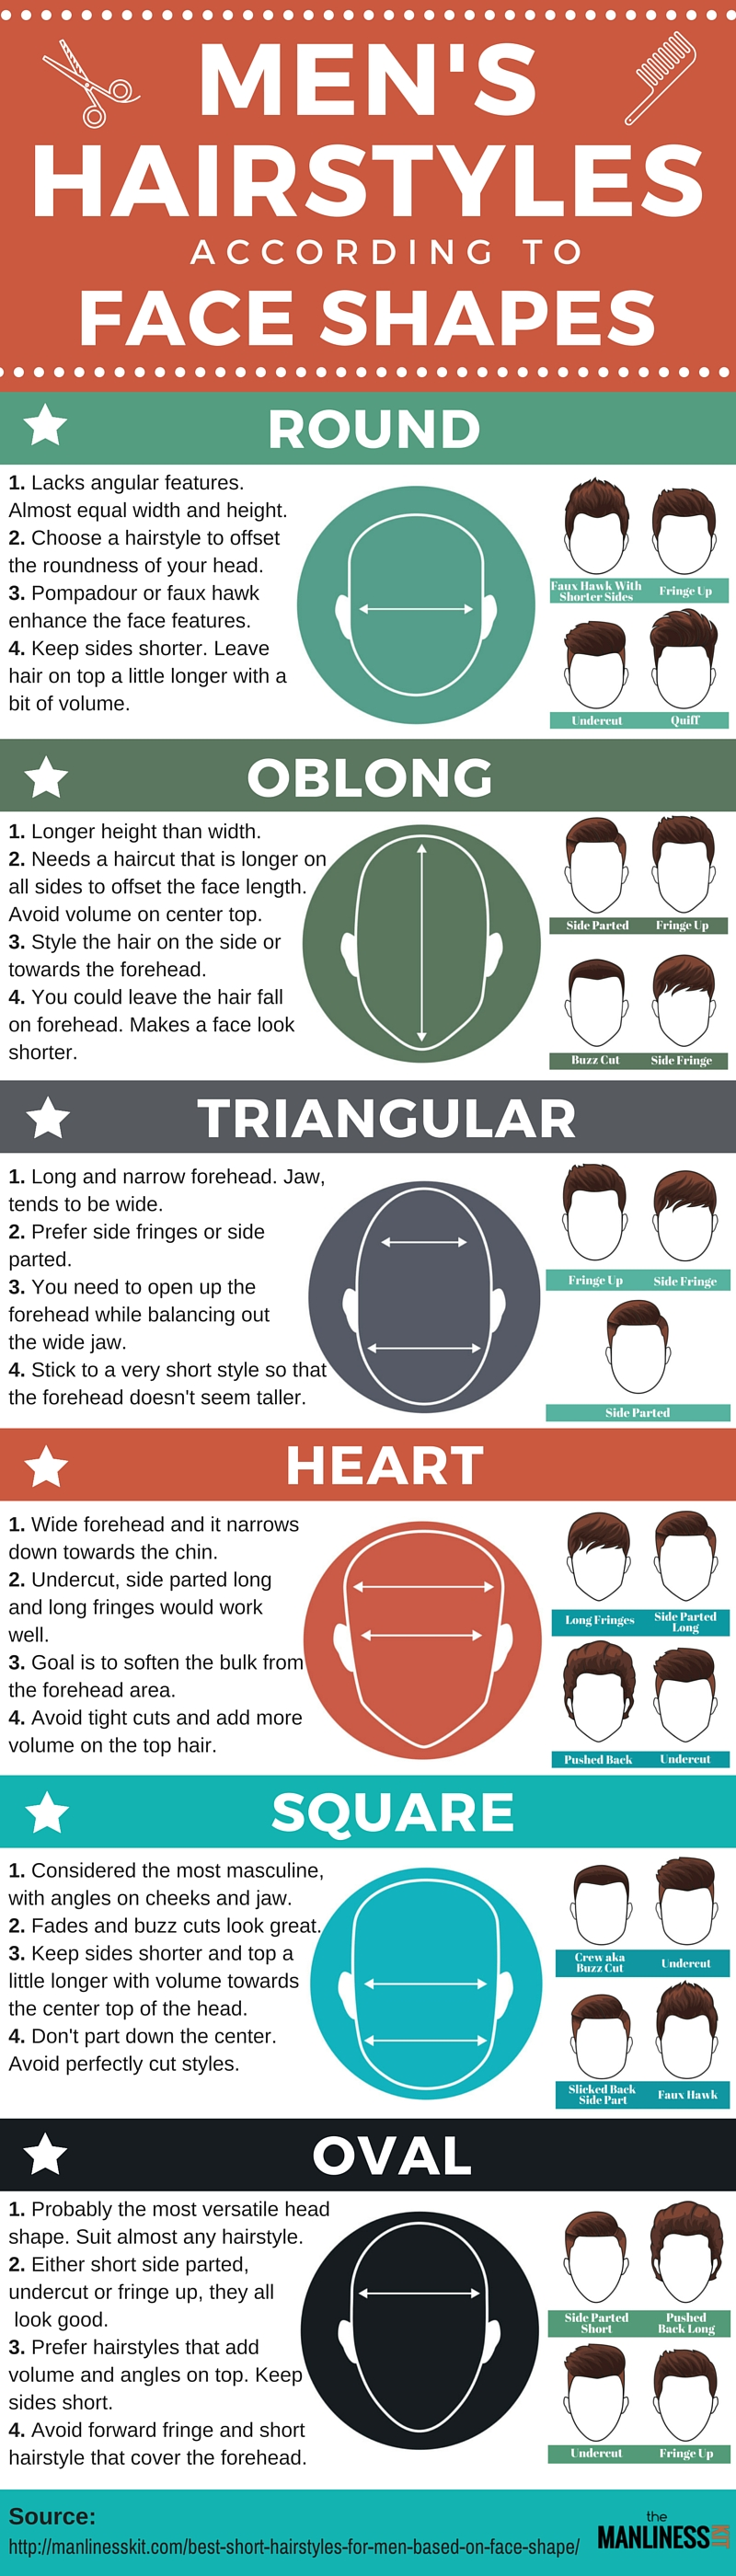 Best Short Hairstyles For Men According To Face Shape - Pinterest